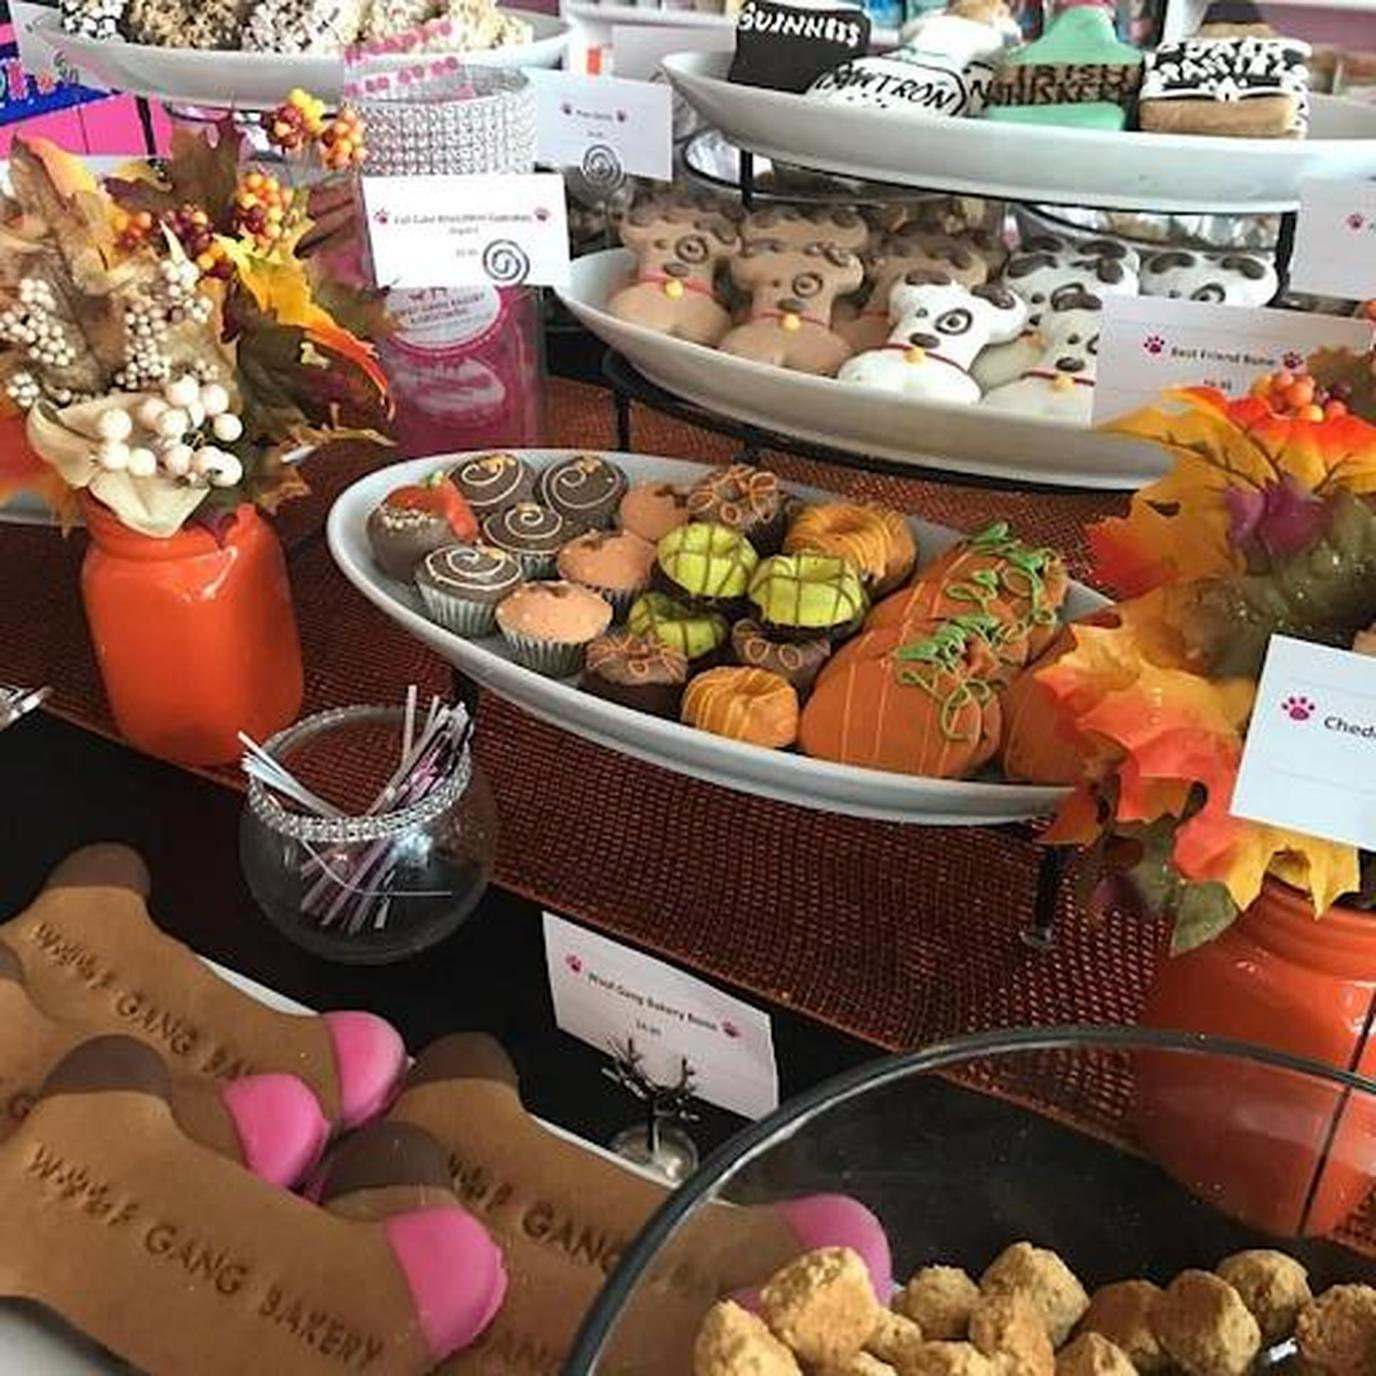 Get decorated dog cookies and pumpkin treats and more at Woof Gang Bakery & Grooming locations.